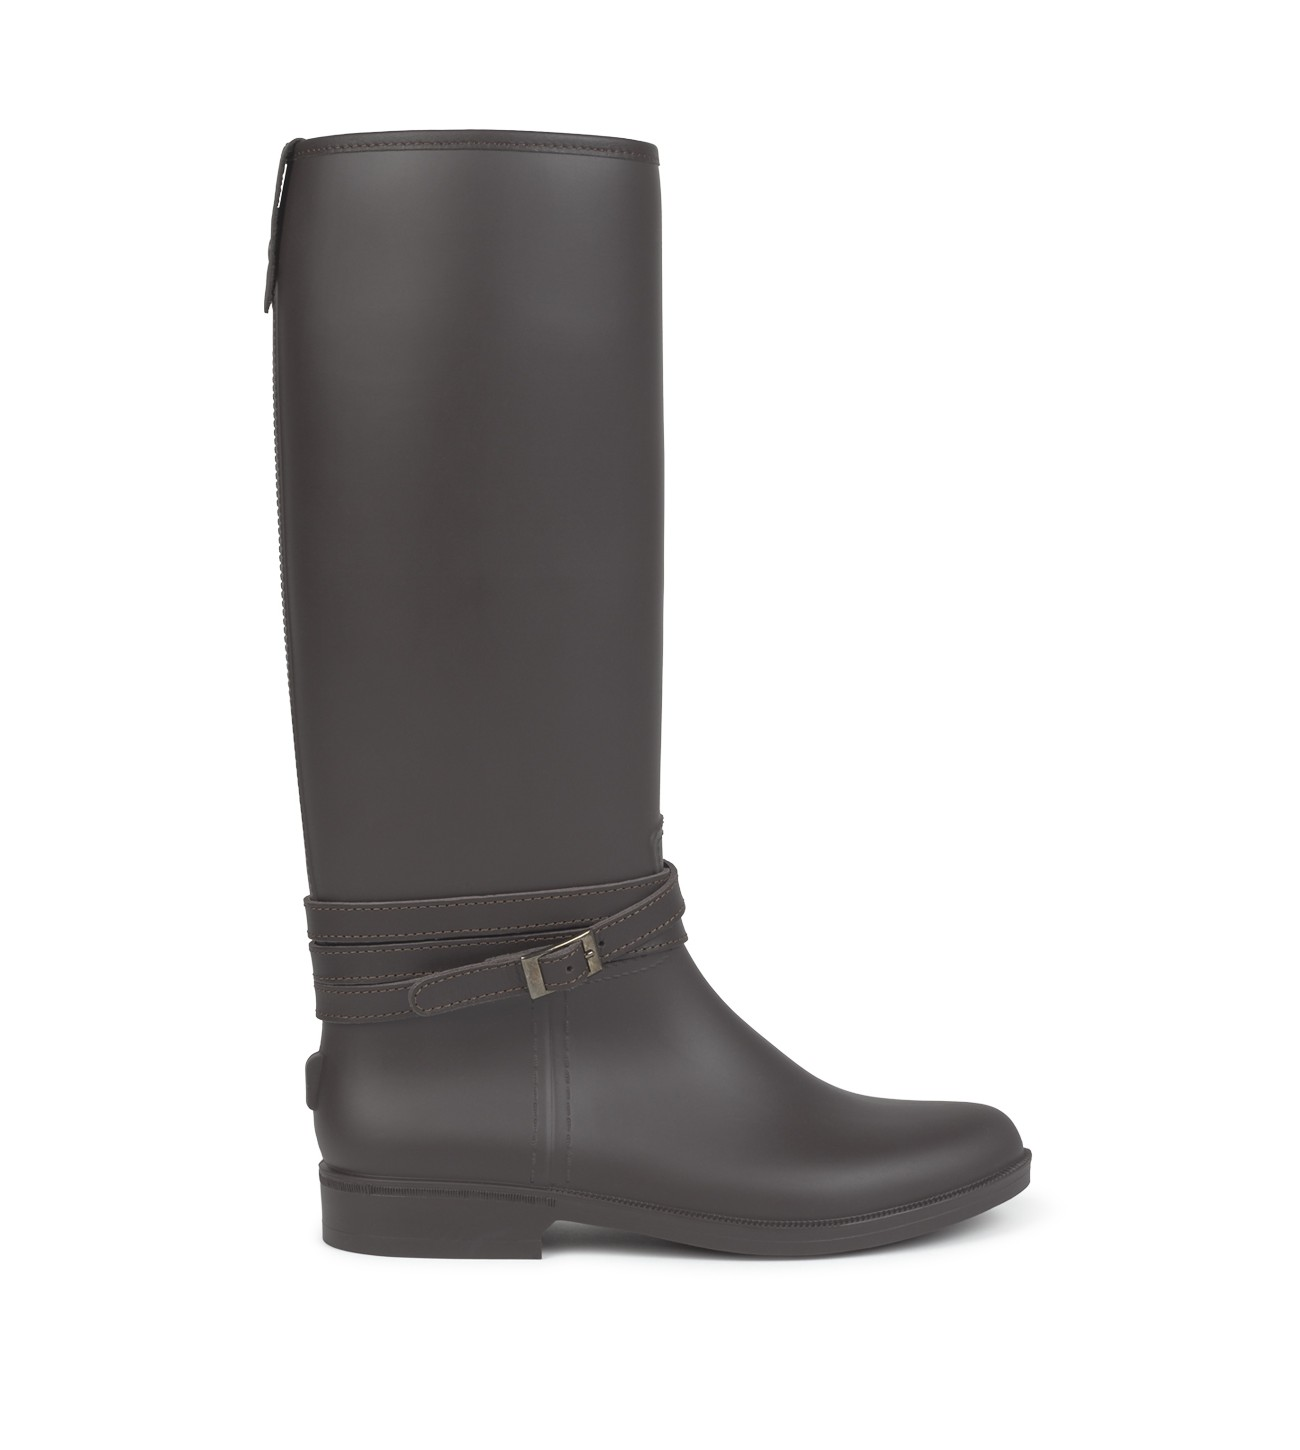 PESERICO_WATER_BOOT_WITH_BUCKLE_MARIONA_FASHION_CLOTHING_WOMAN_SHOP_ONLINE_S39426C0